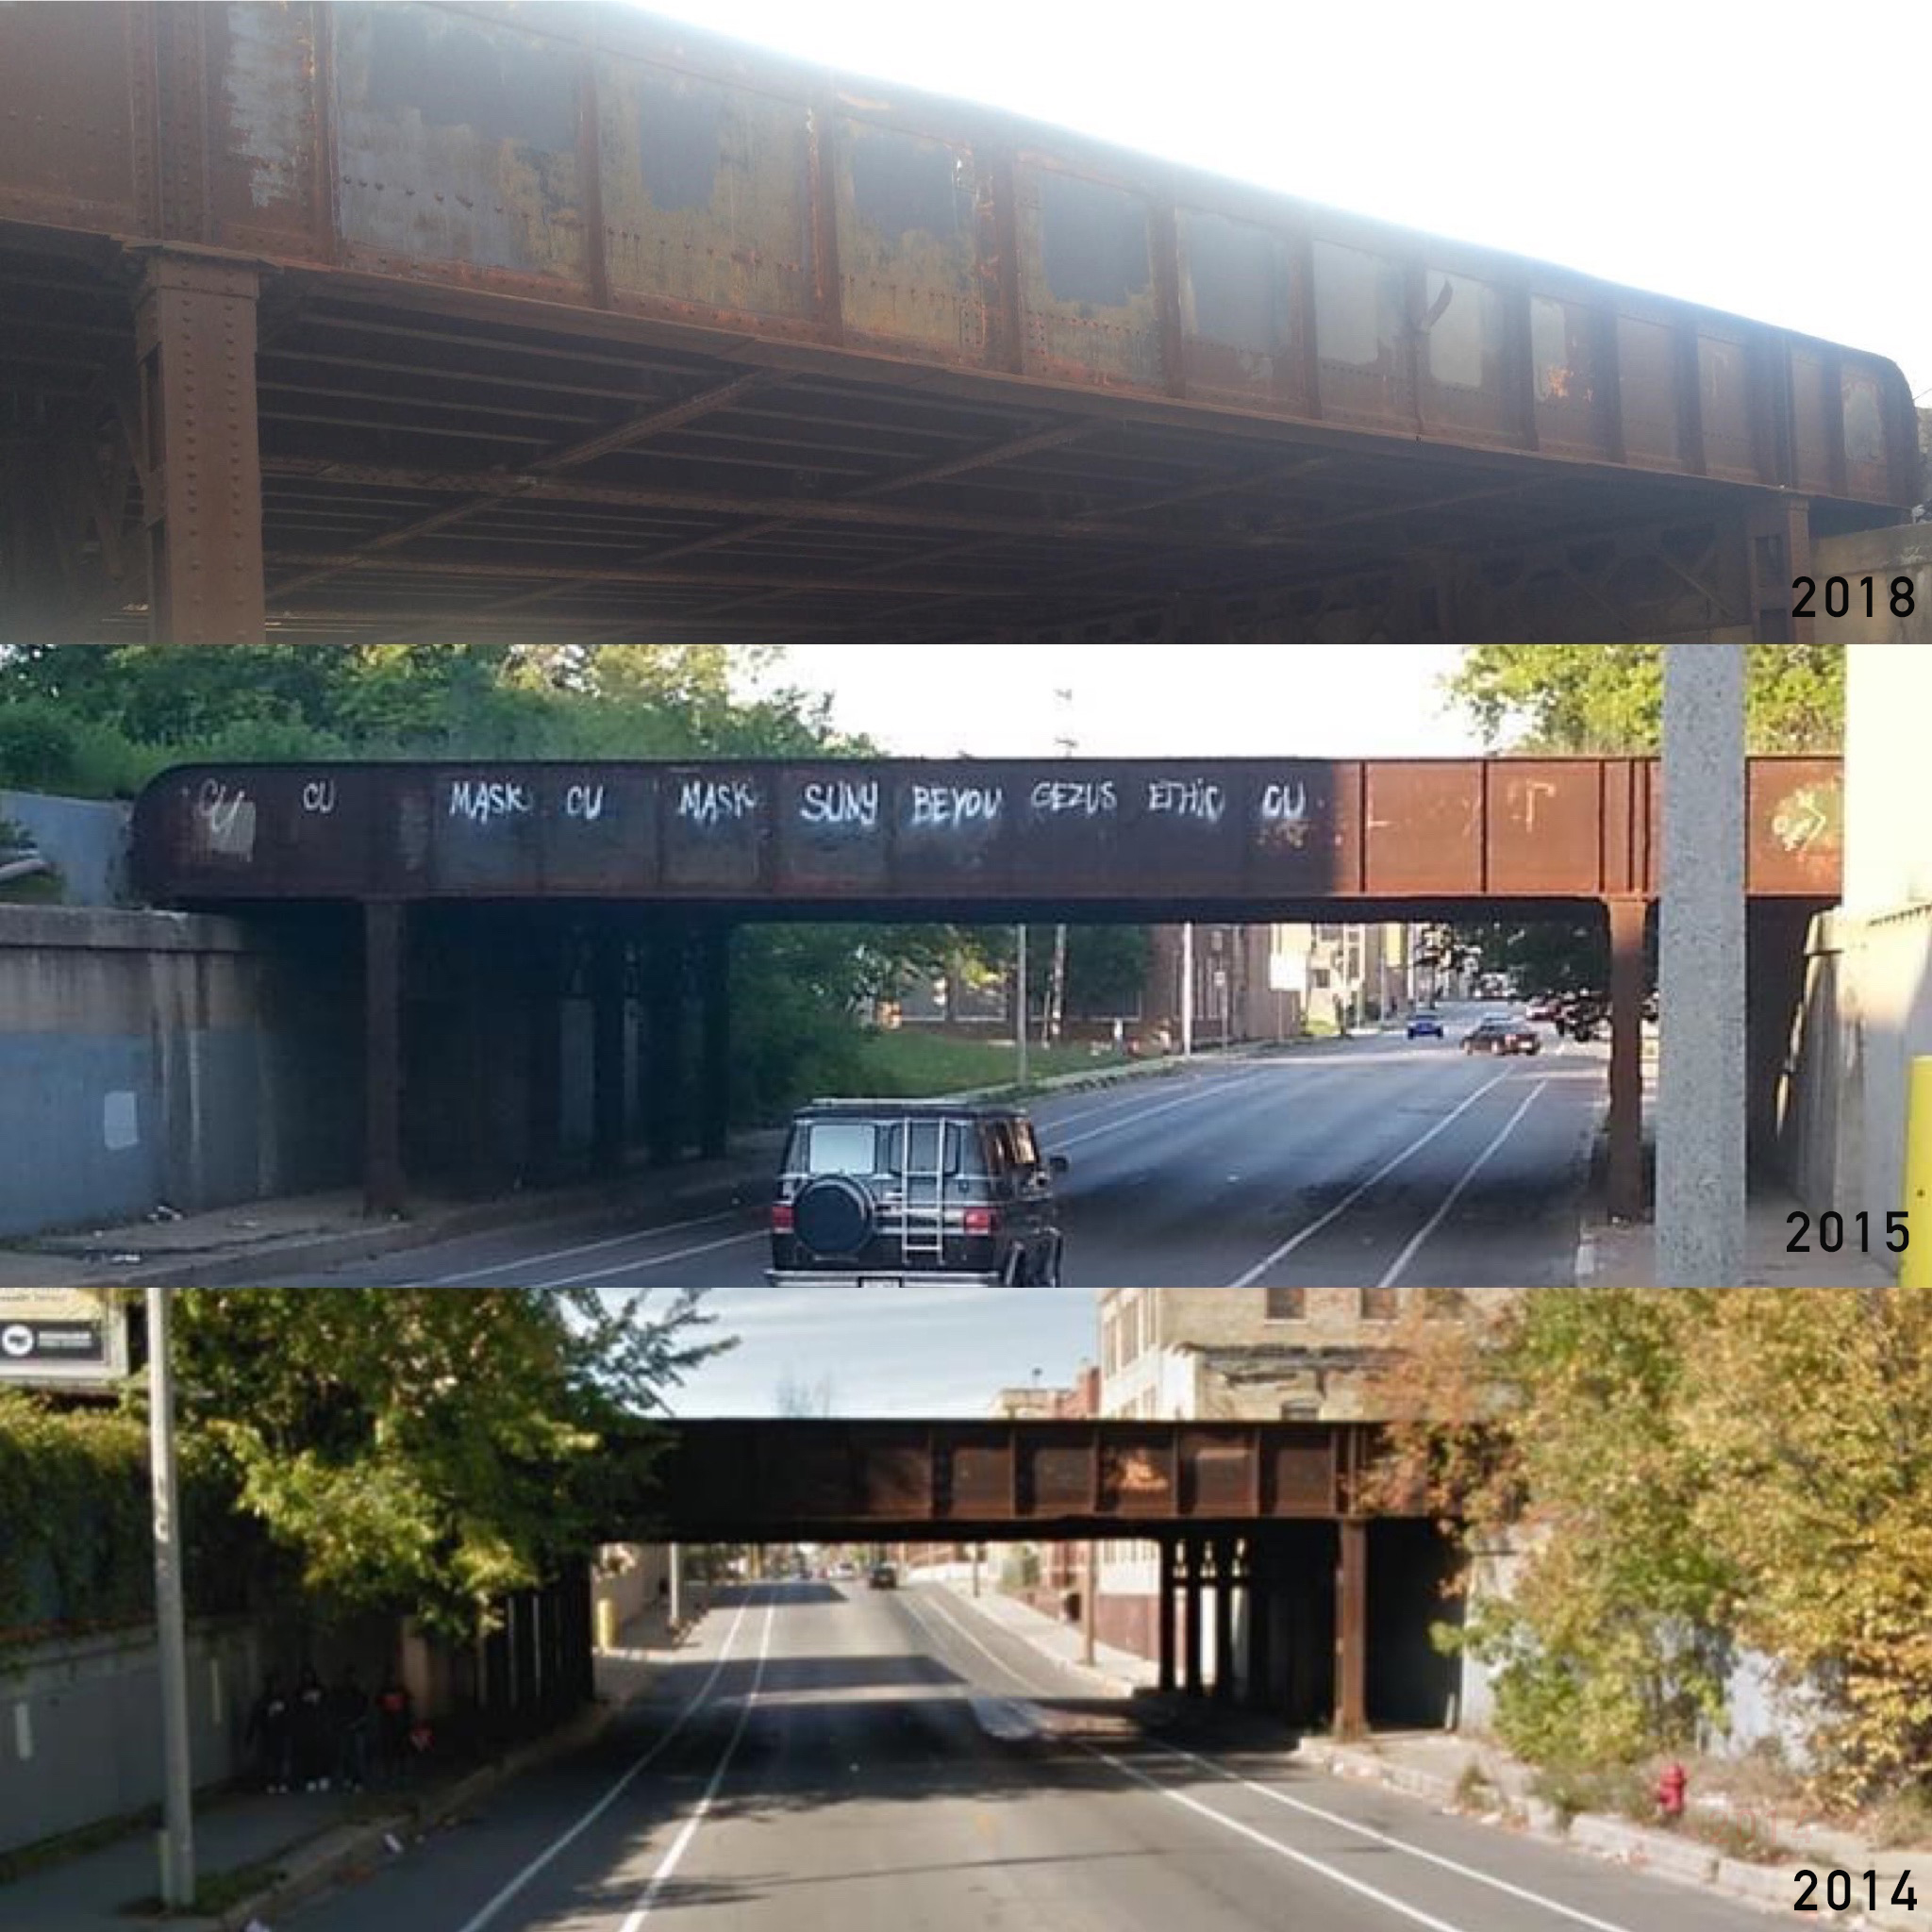 The 31st Center St. bridge over the years. (Picture by Darrian Davis)